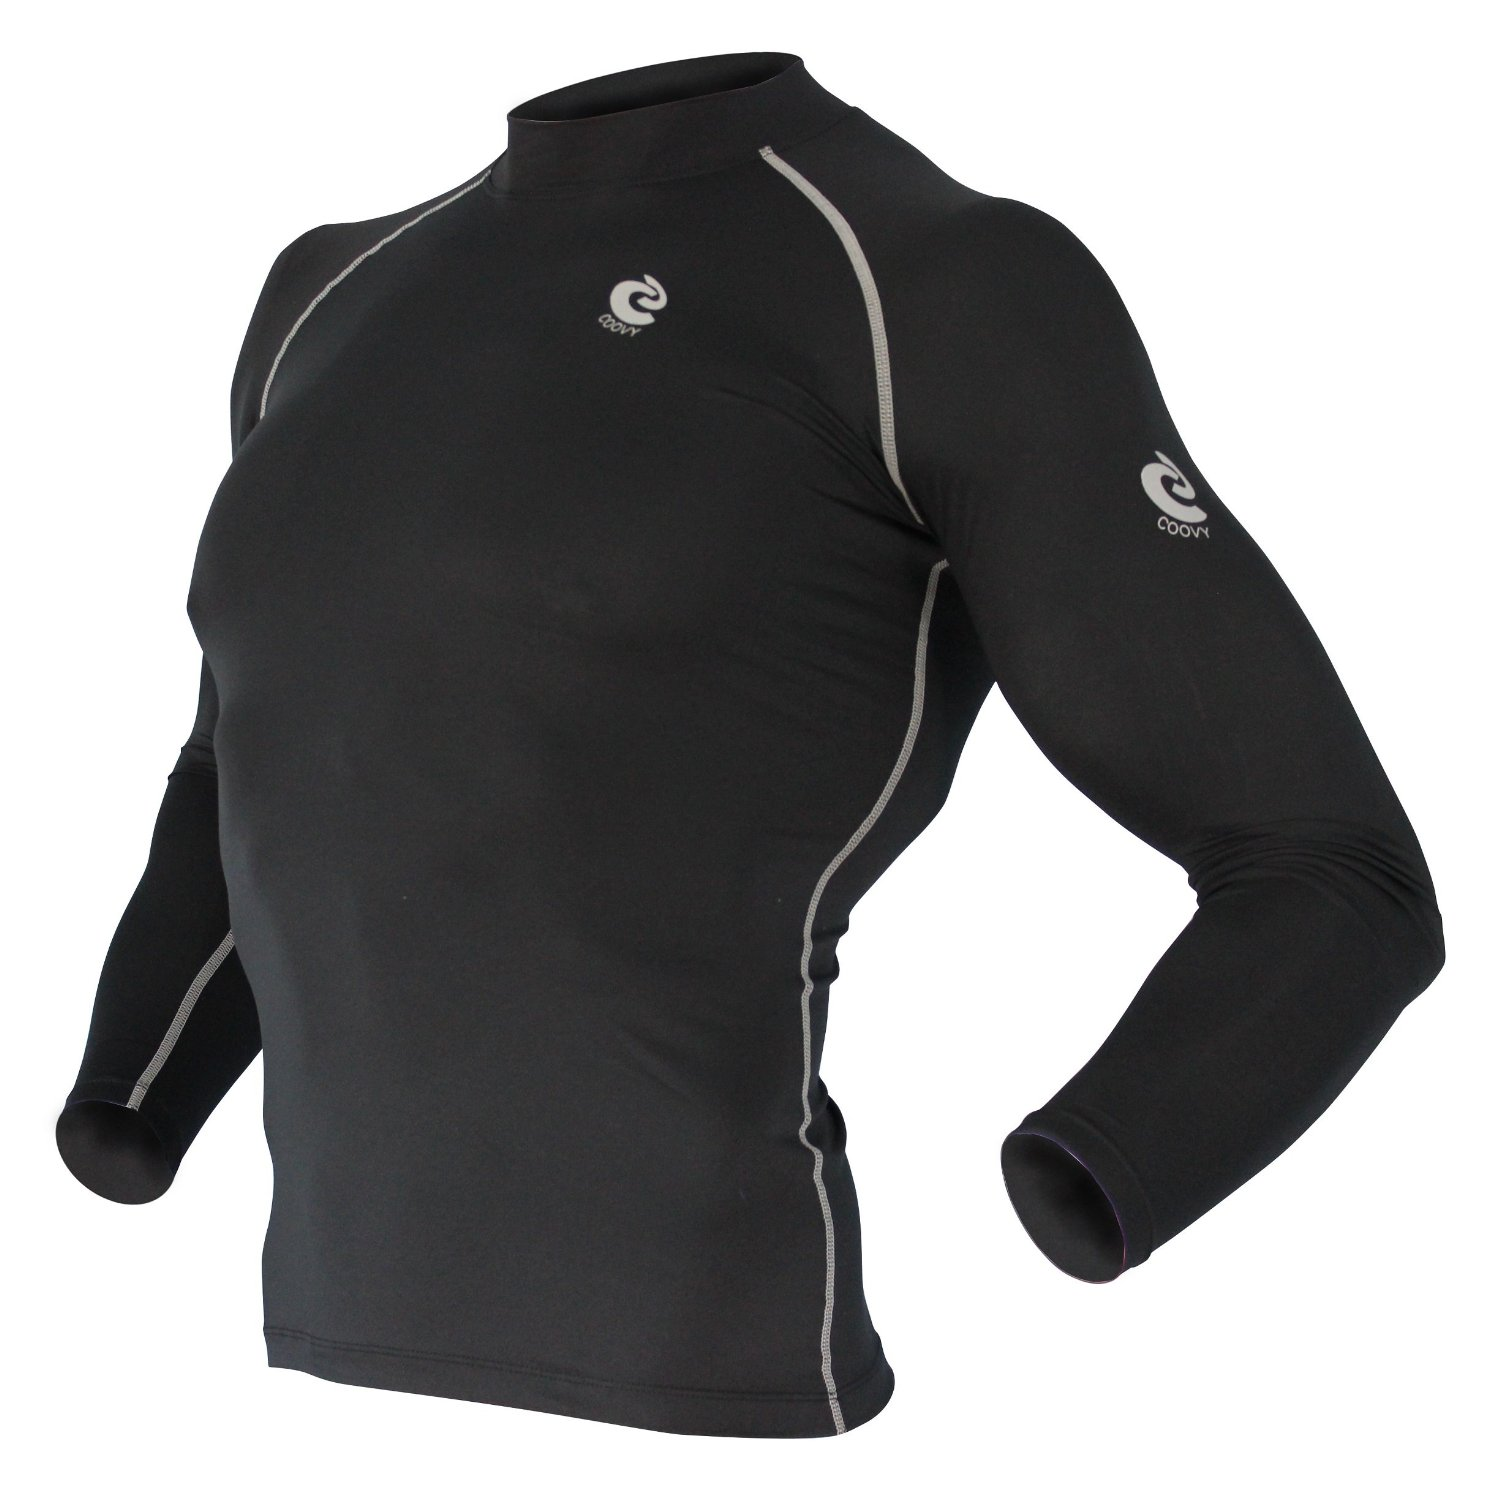 Top 10 Best Men's Base Layers for Athletics in 2020 Reviews